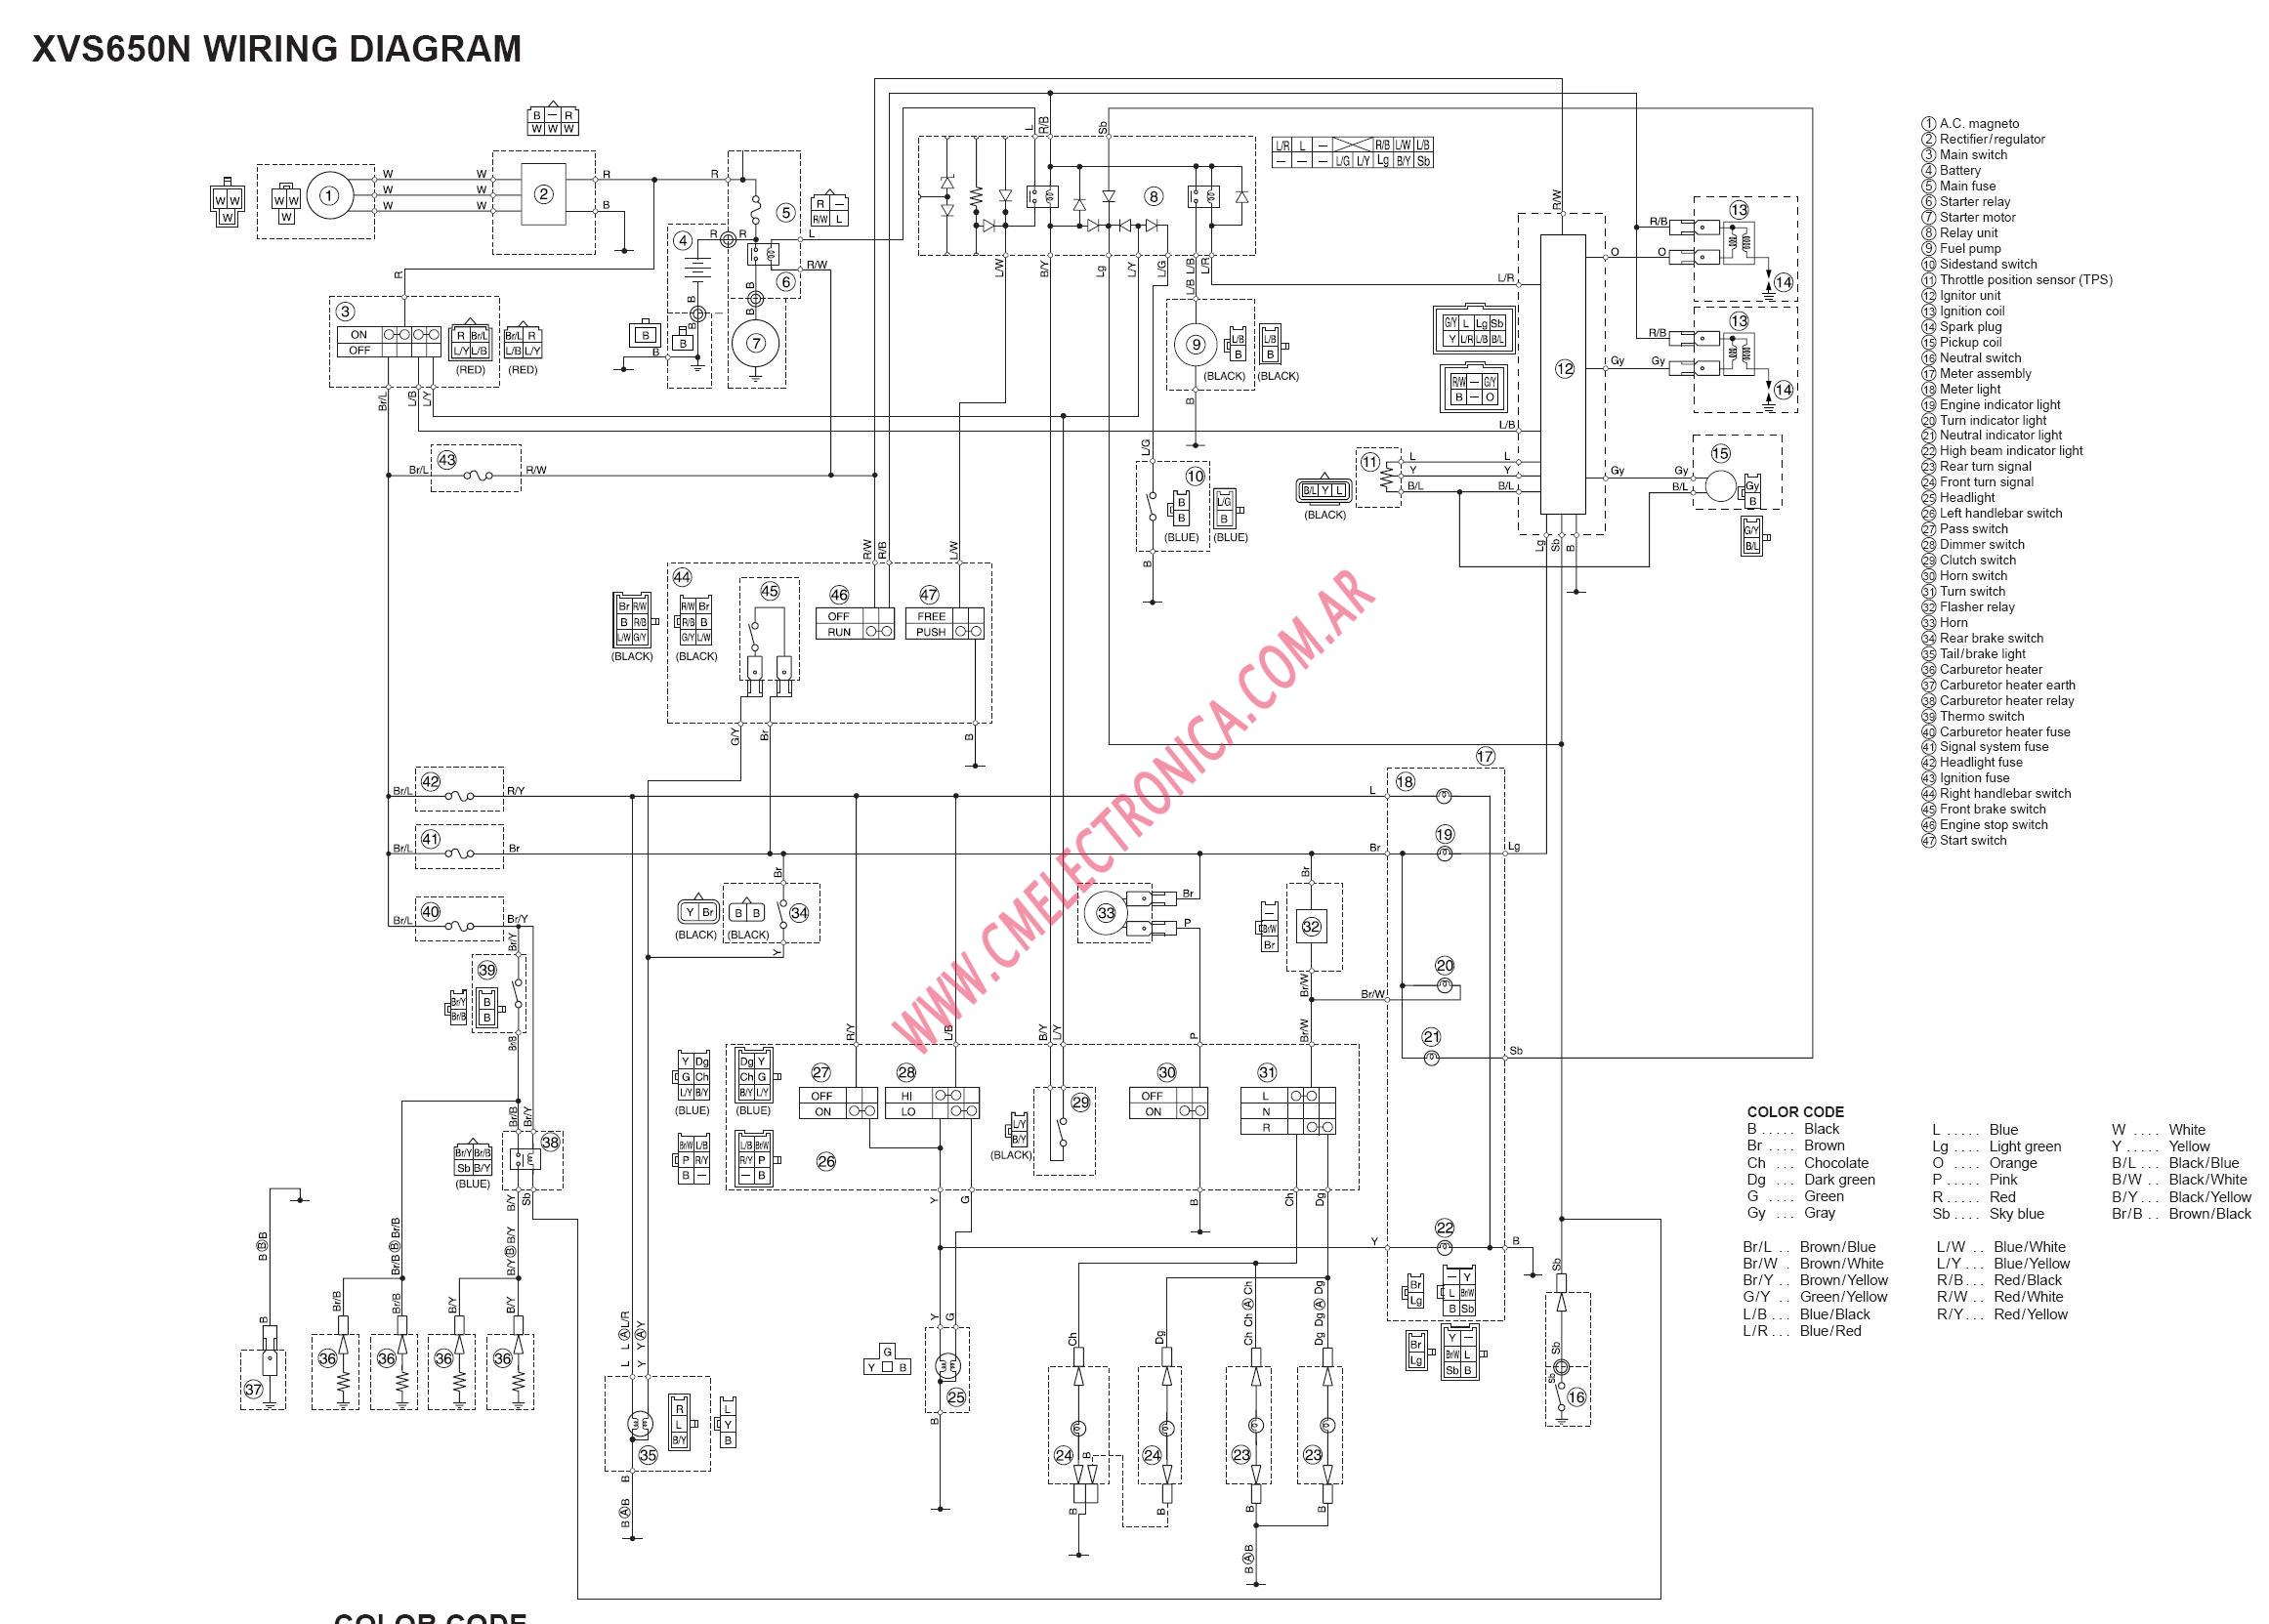 yamaha dragstar xvs650 2000 wiring diagram for 2007 gsxr 600 the wiring diagram readingrat net 2012 Yamaha WR250F at suagrazia.org